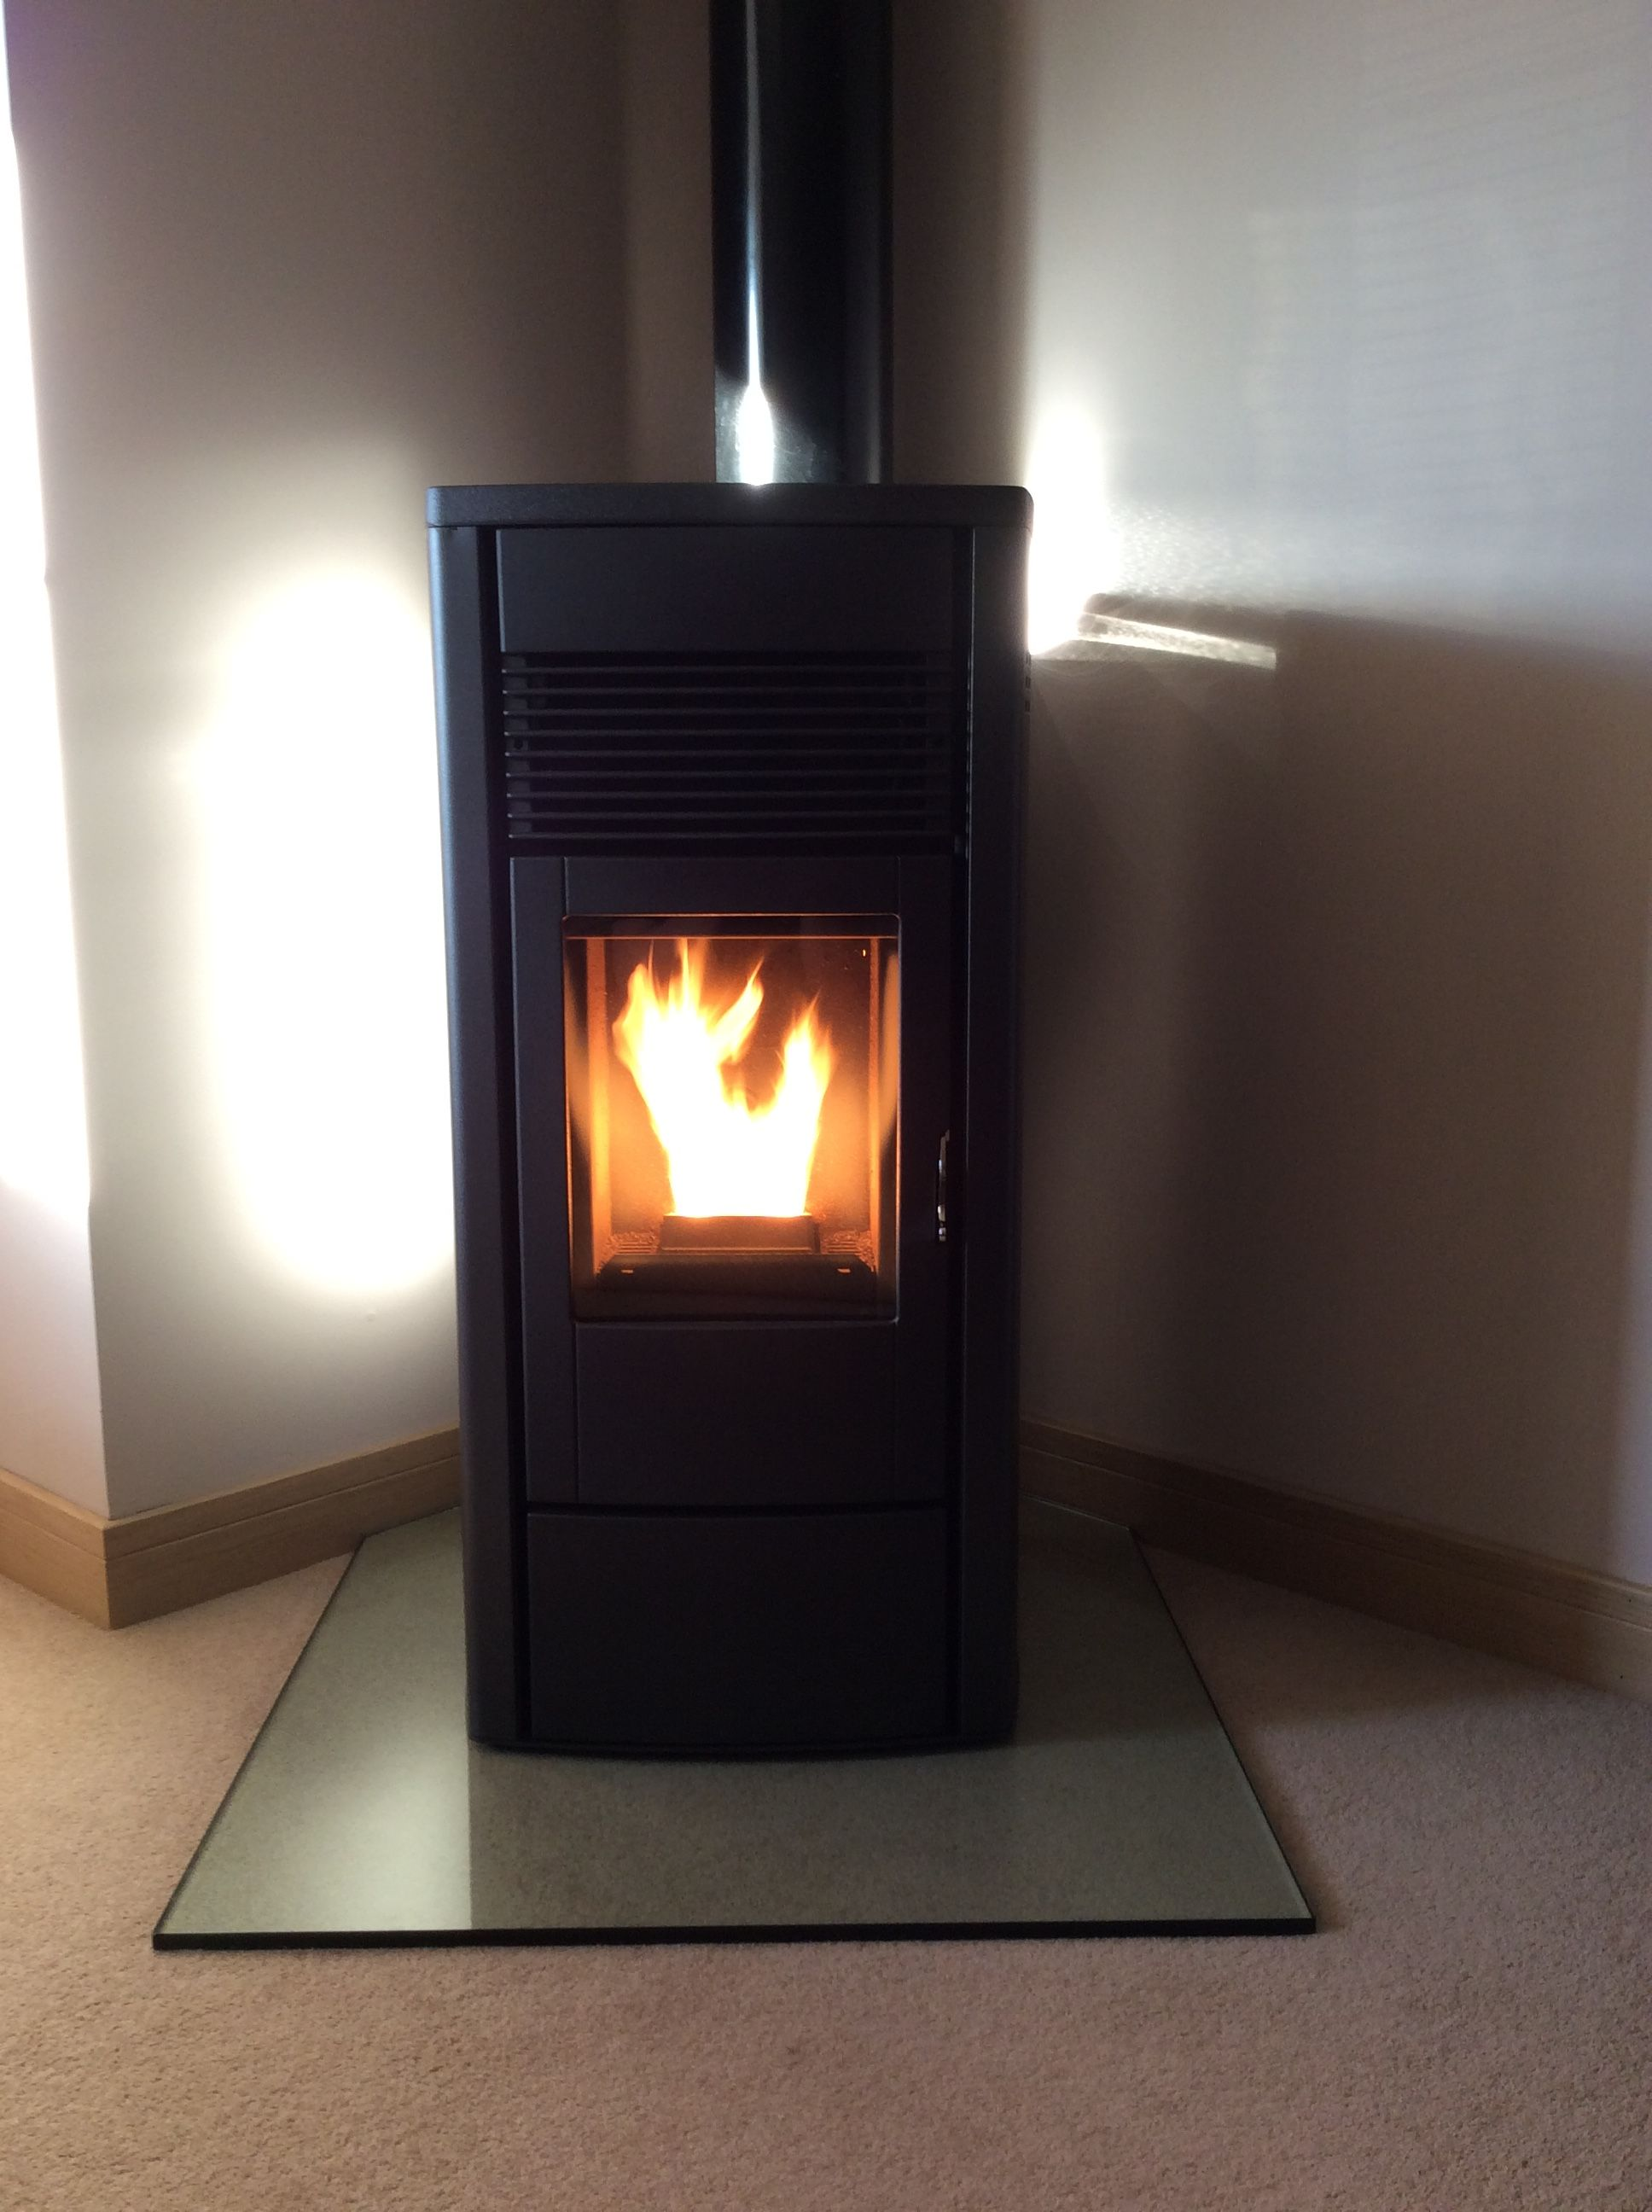 Glass fireplace hearth panels. Toughened glass hearth protectors ...